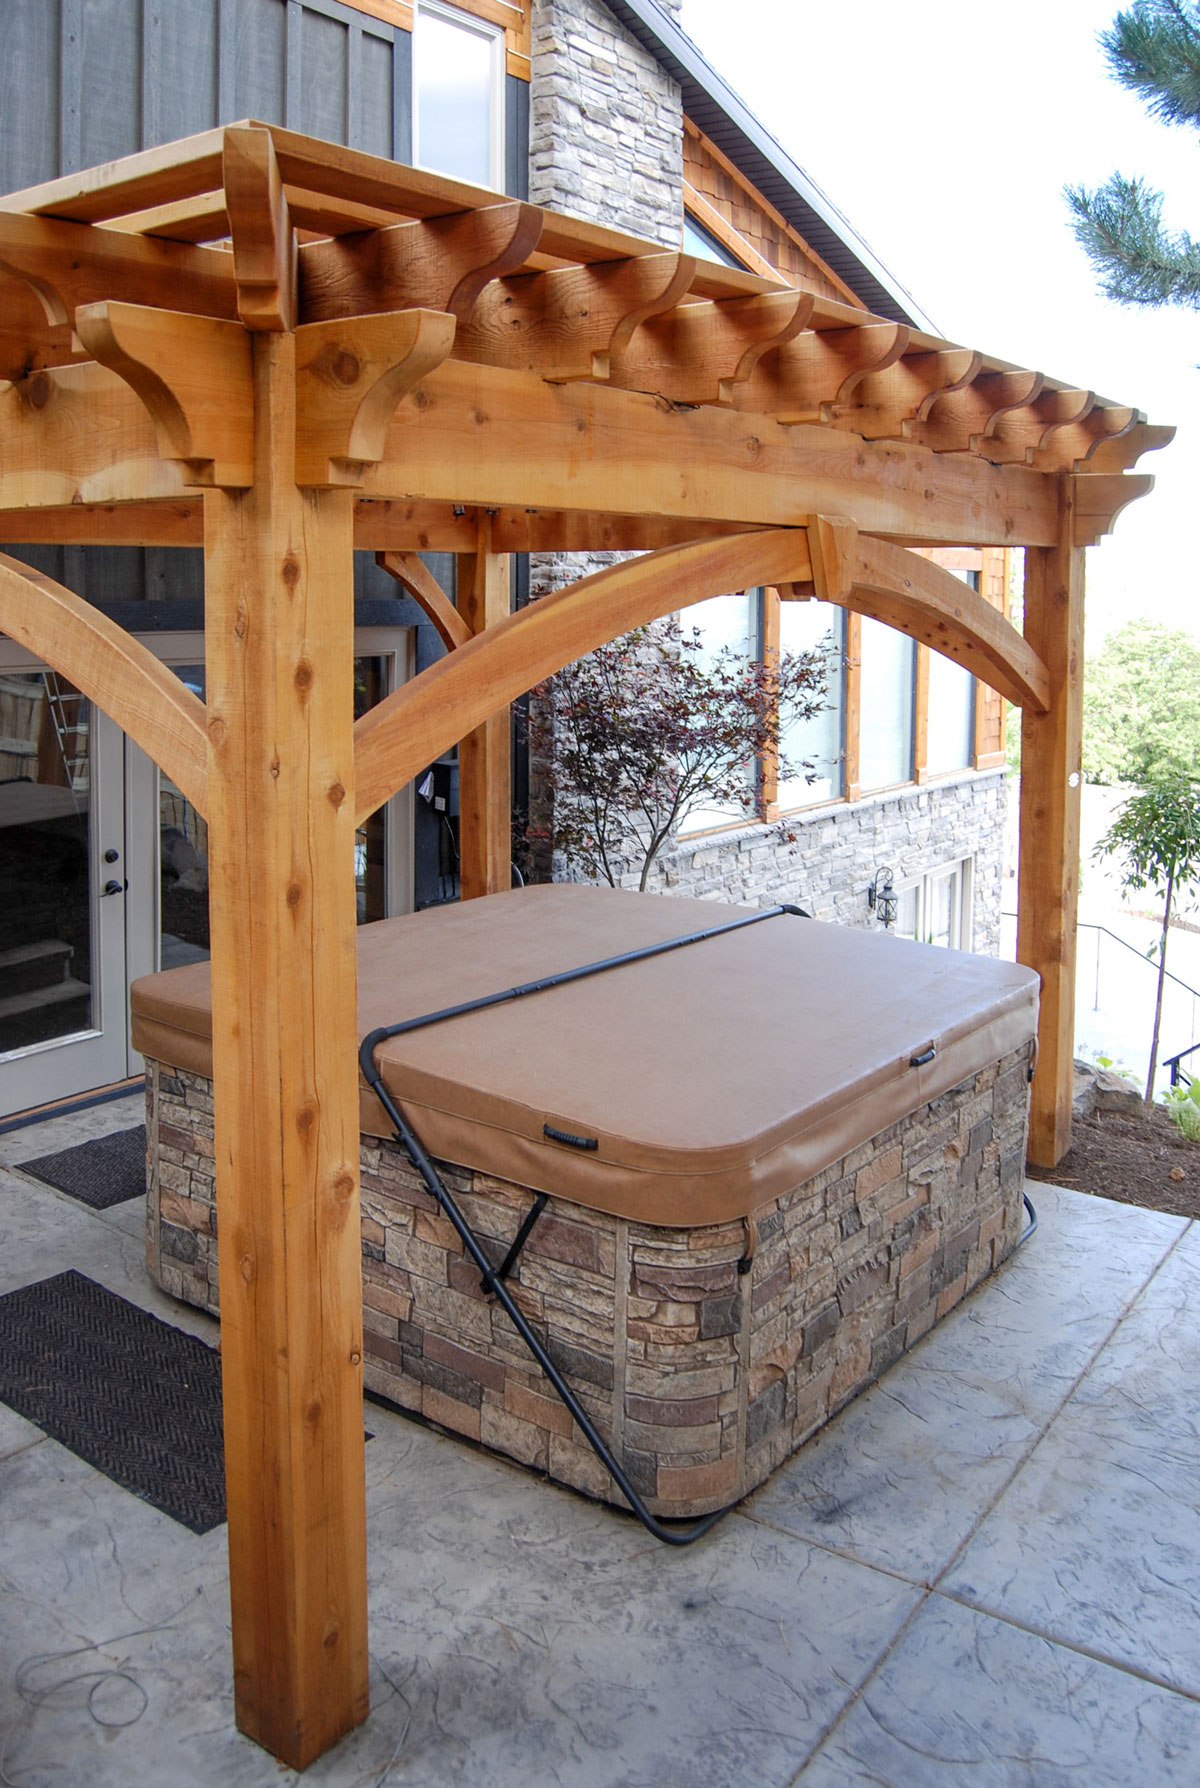 cedar pergola over hot tub - Cedar Easy DIY Pergola Hot Tub Cover Western Timber Frame